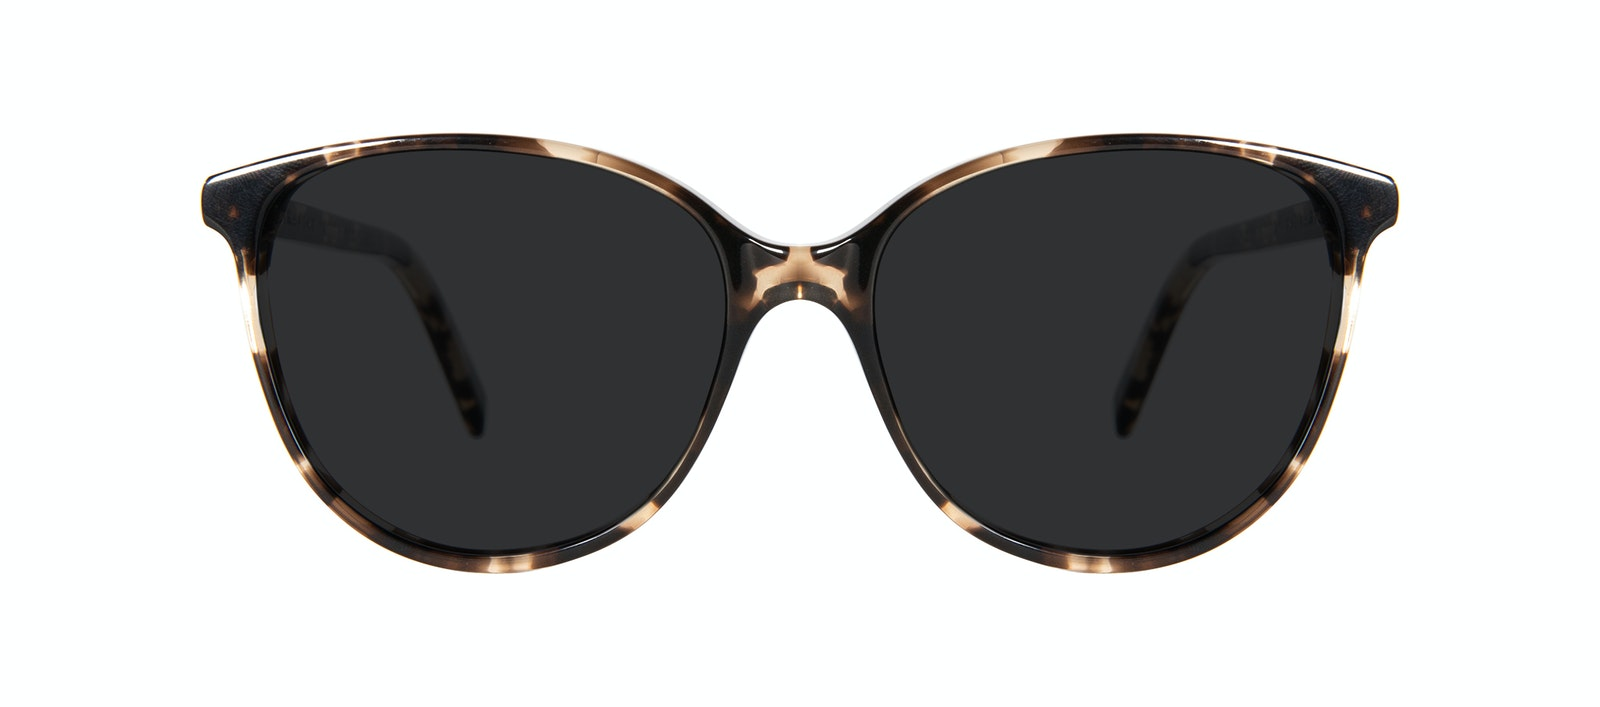 Affordable Fashion Glasses Round Sunglasses Women Imagine Petite Leopard Front